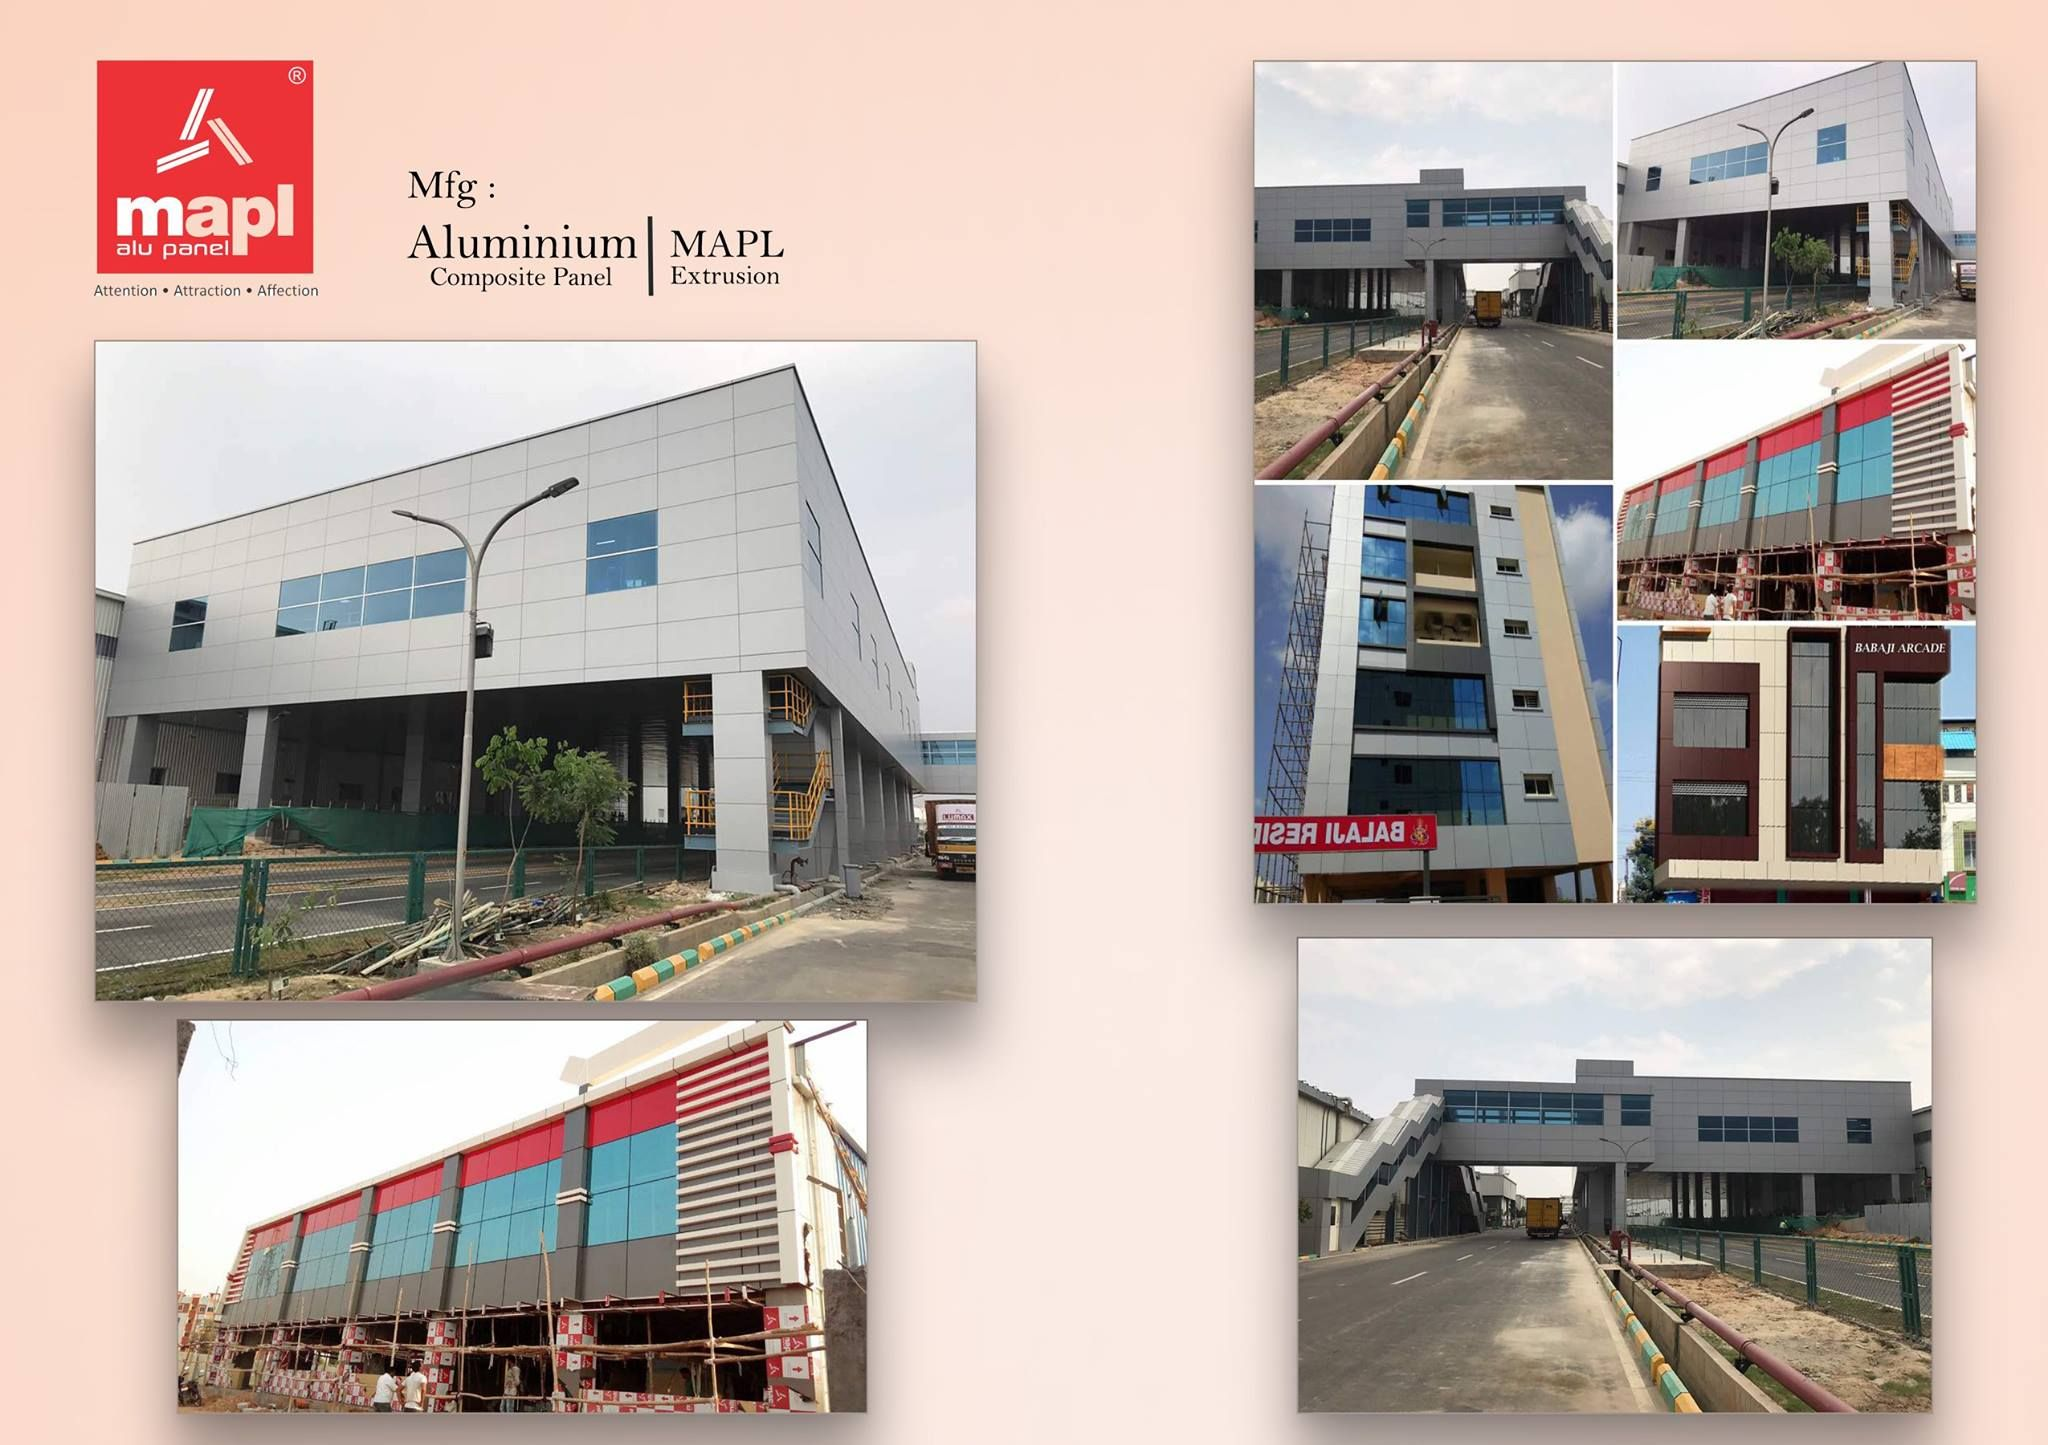 Pin by MAPL ALU PANEL on ALUMINIUM COMPOSITE PANEL | Home